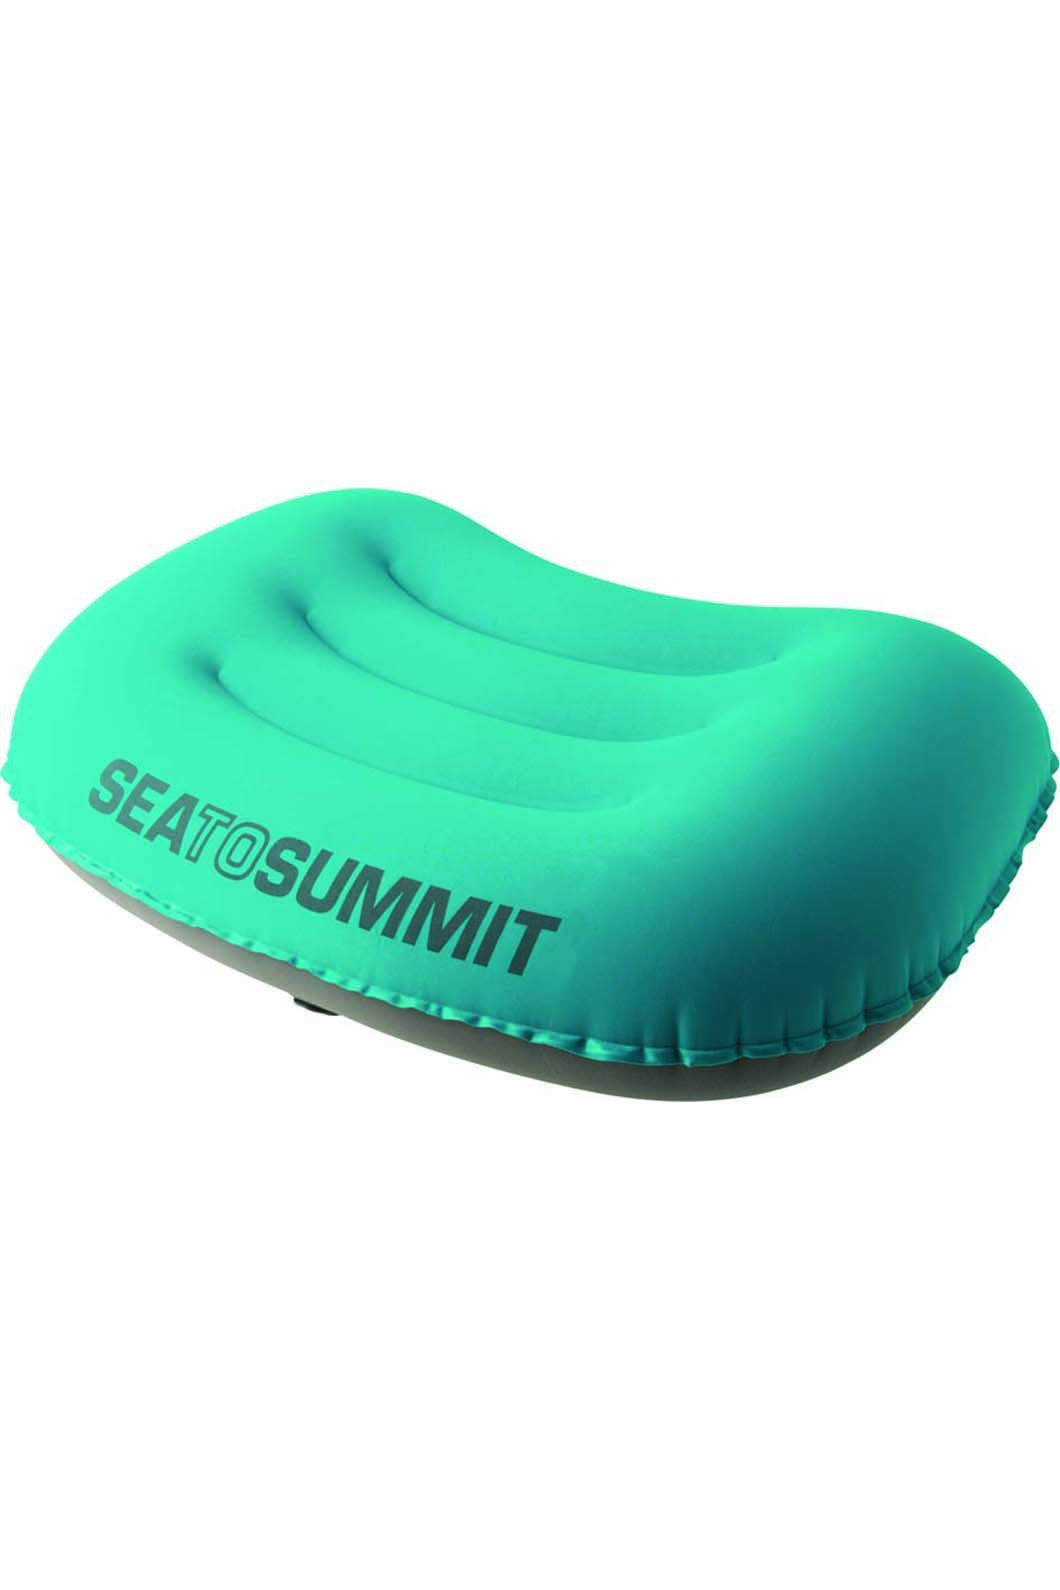 Sea to Summit Aeros Ultralight Pillow Teal, None, hi-res